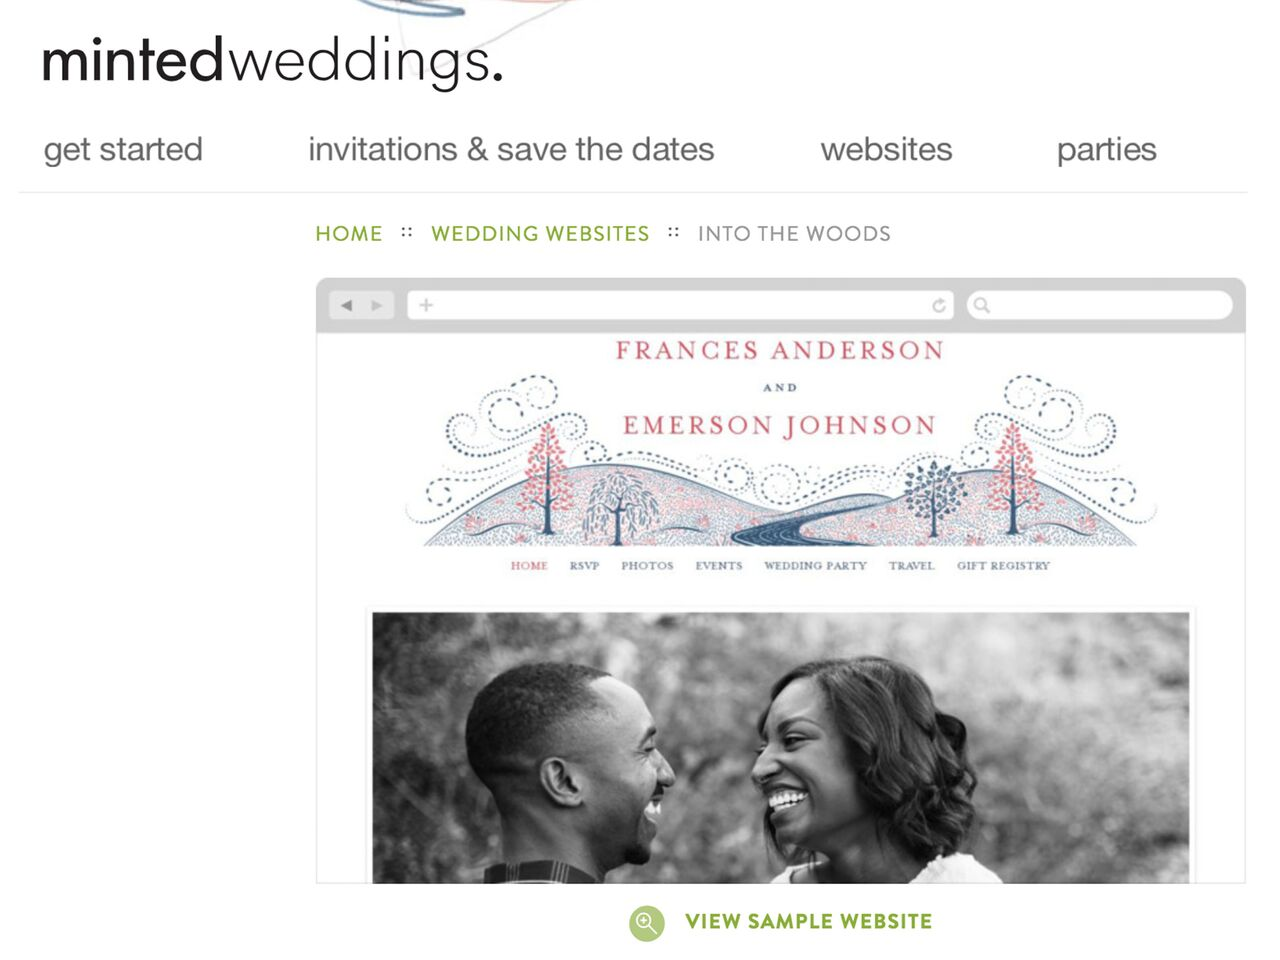 MintedWeddings